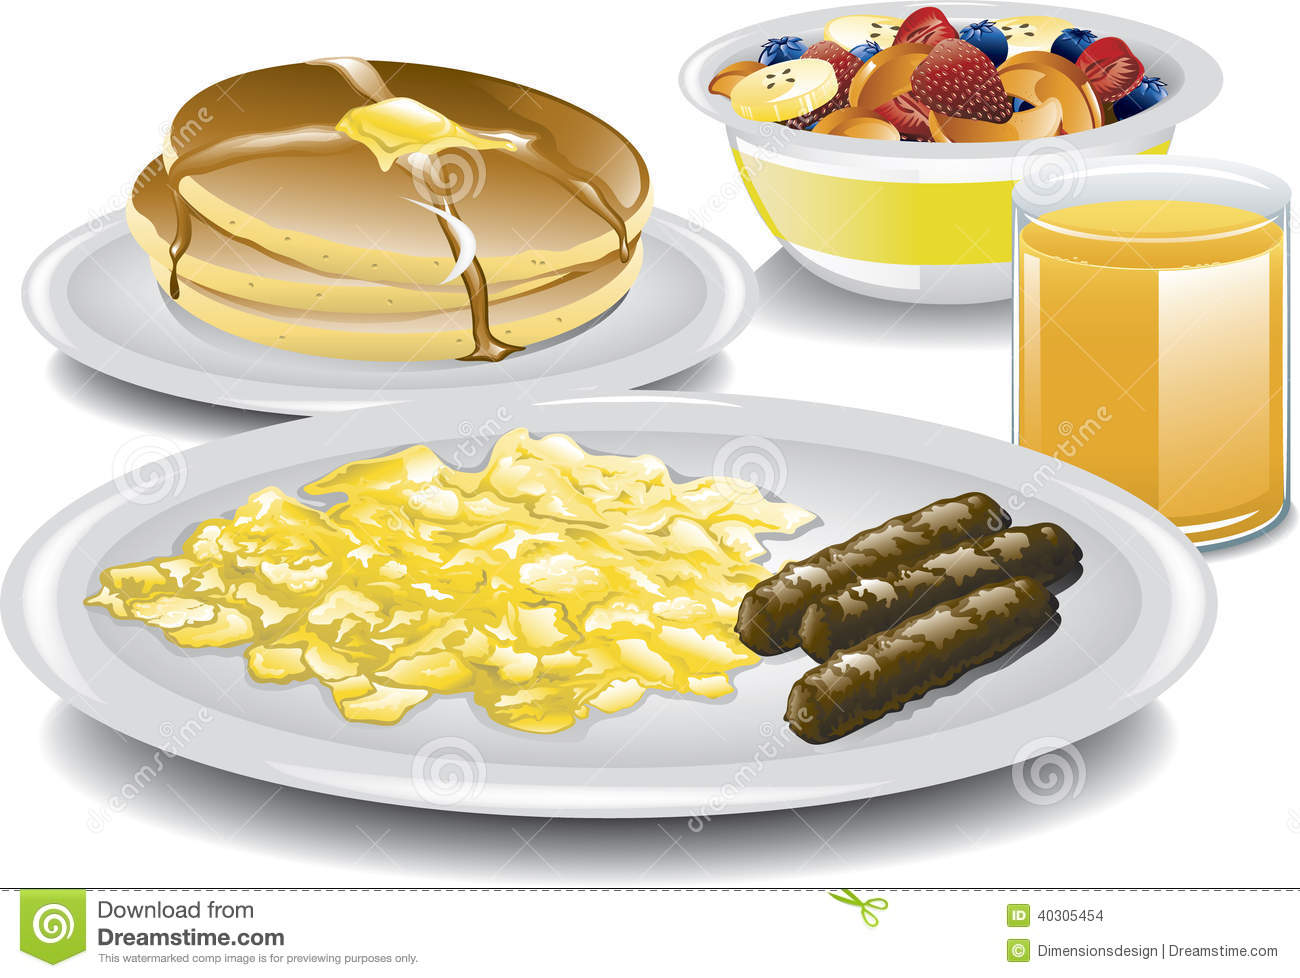 Illustration Of A Complete Breakfast With Scrambled Eggs Sausage Fruit Bowl Pancakes Syrup And Glass Orange Juice